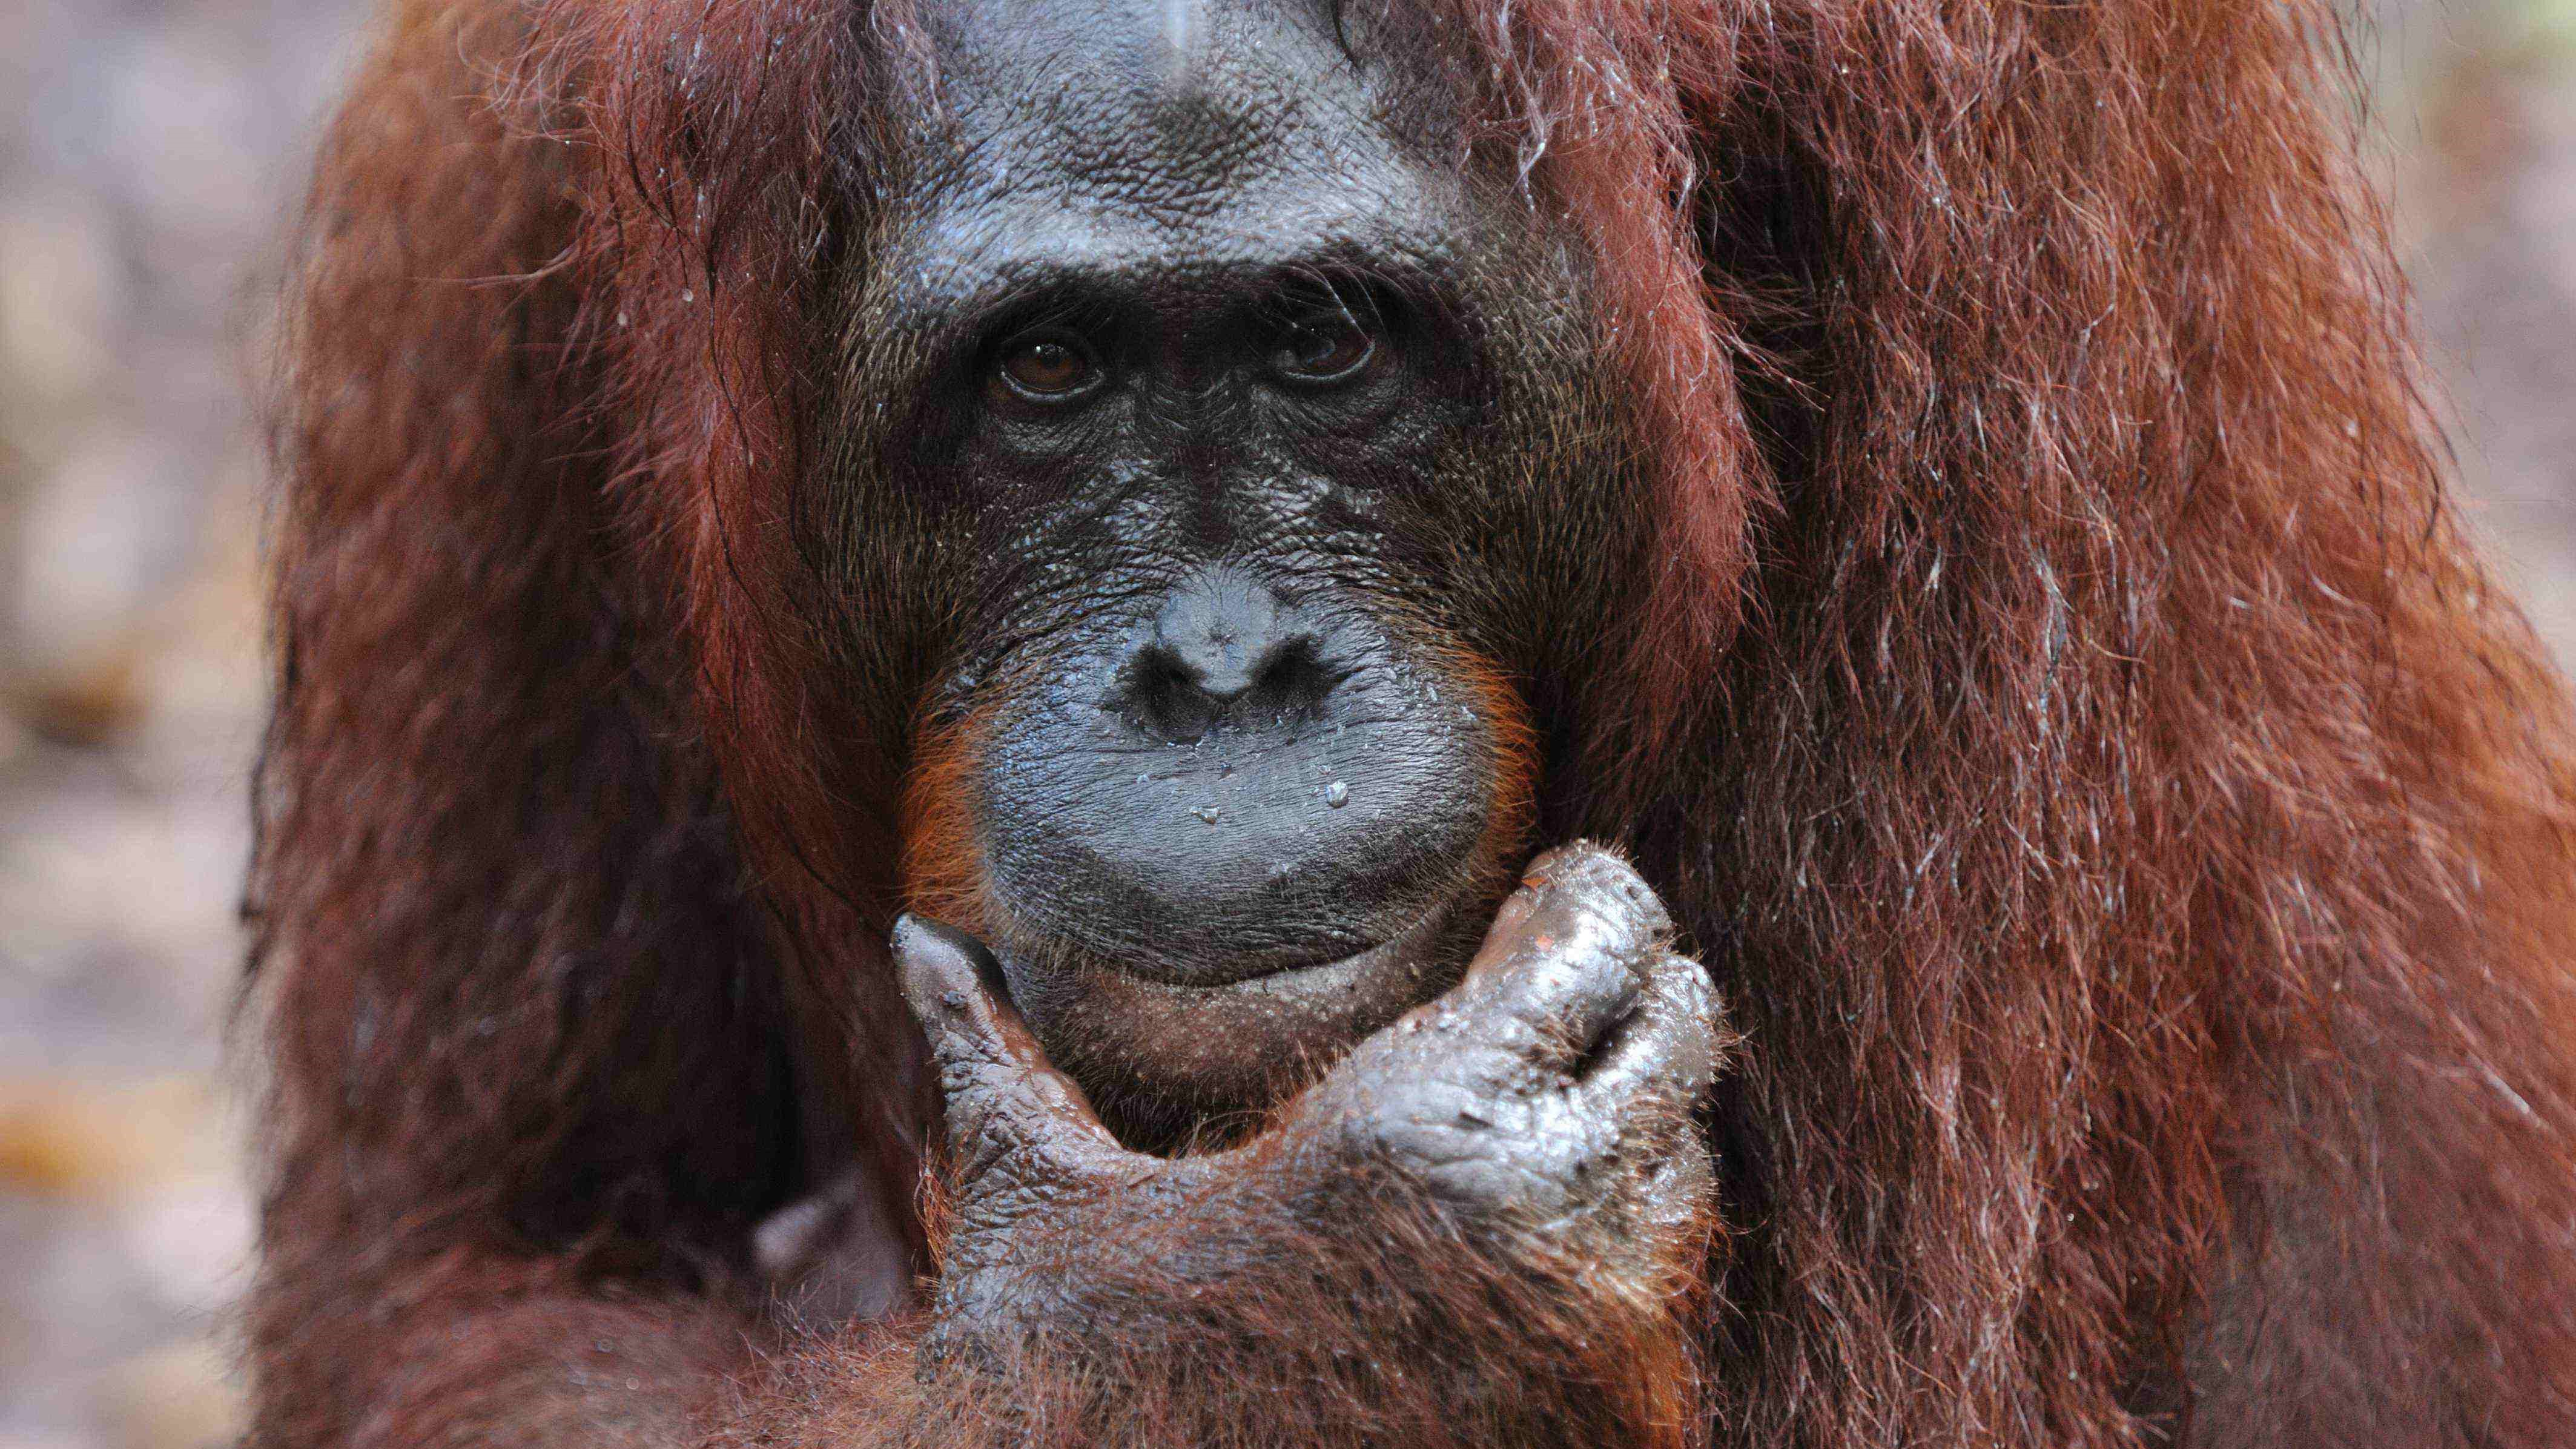 tanjung puting, wildlife, orangutan, tour, trip, safari, jungle, forest, rain forest, wetland, pondok tanggui, camp leakey, klotok boat, guide, rimba lodge, kalimantan, borneo, indonesia